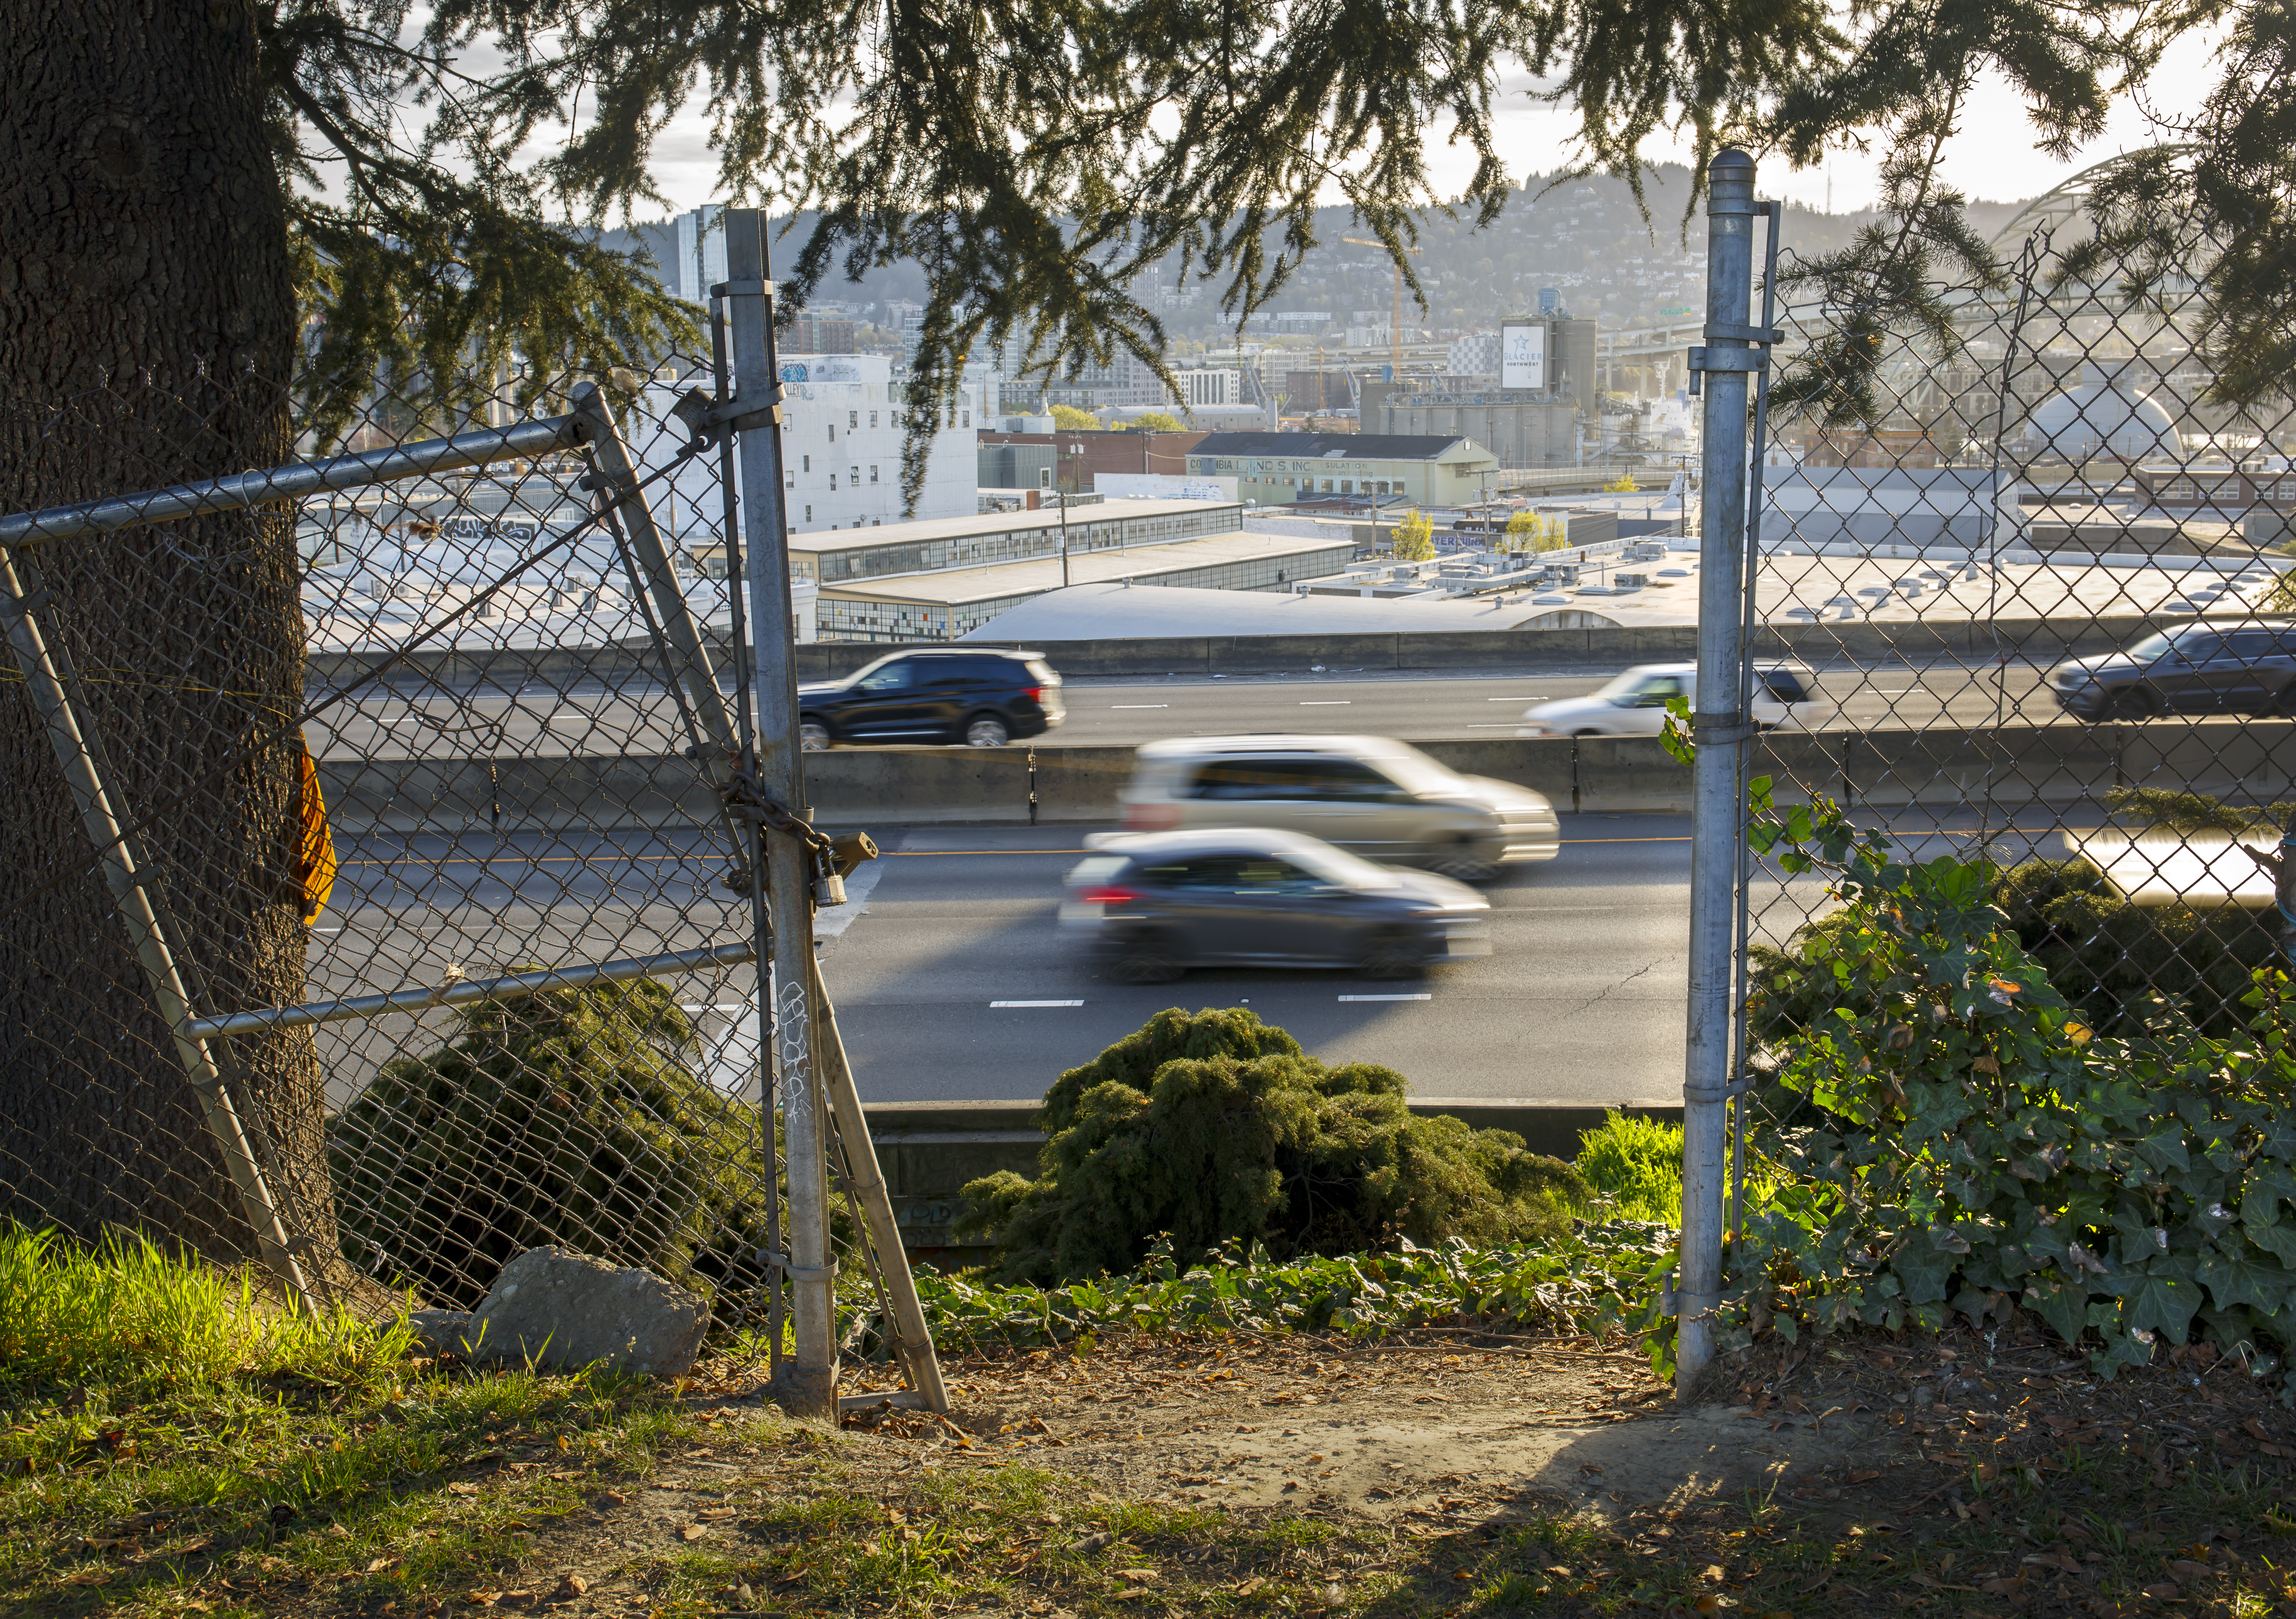 The I-5 freeway is seen through the fencing at the back of Harriet Tubman Middle School in North Portland, April 9, 2021. ODOT's proposed Rose Quarter expansion would bring the freeway even closer to the school grounds.